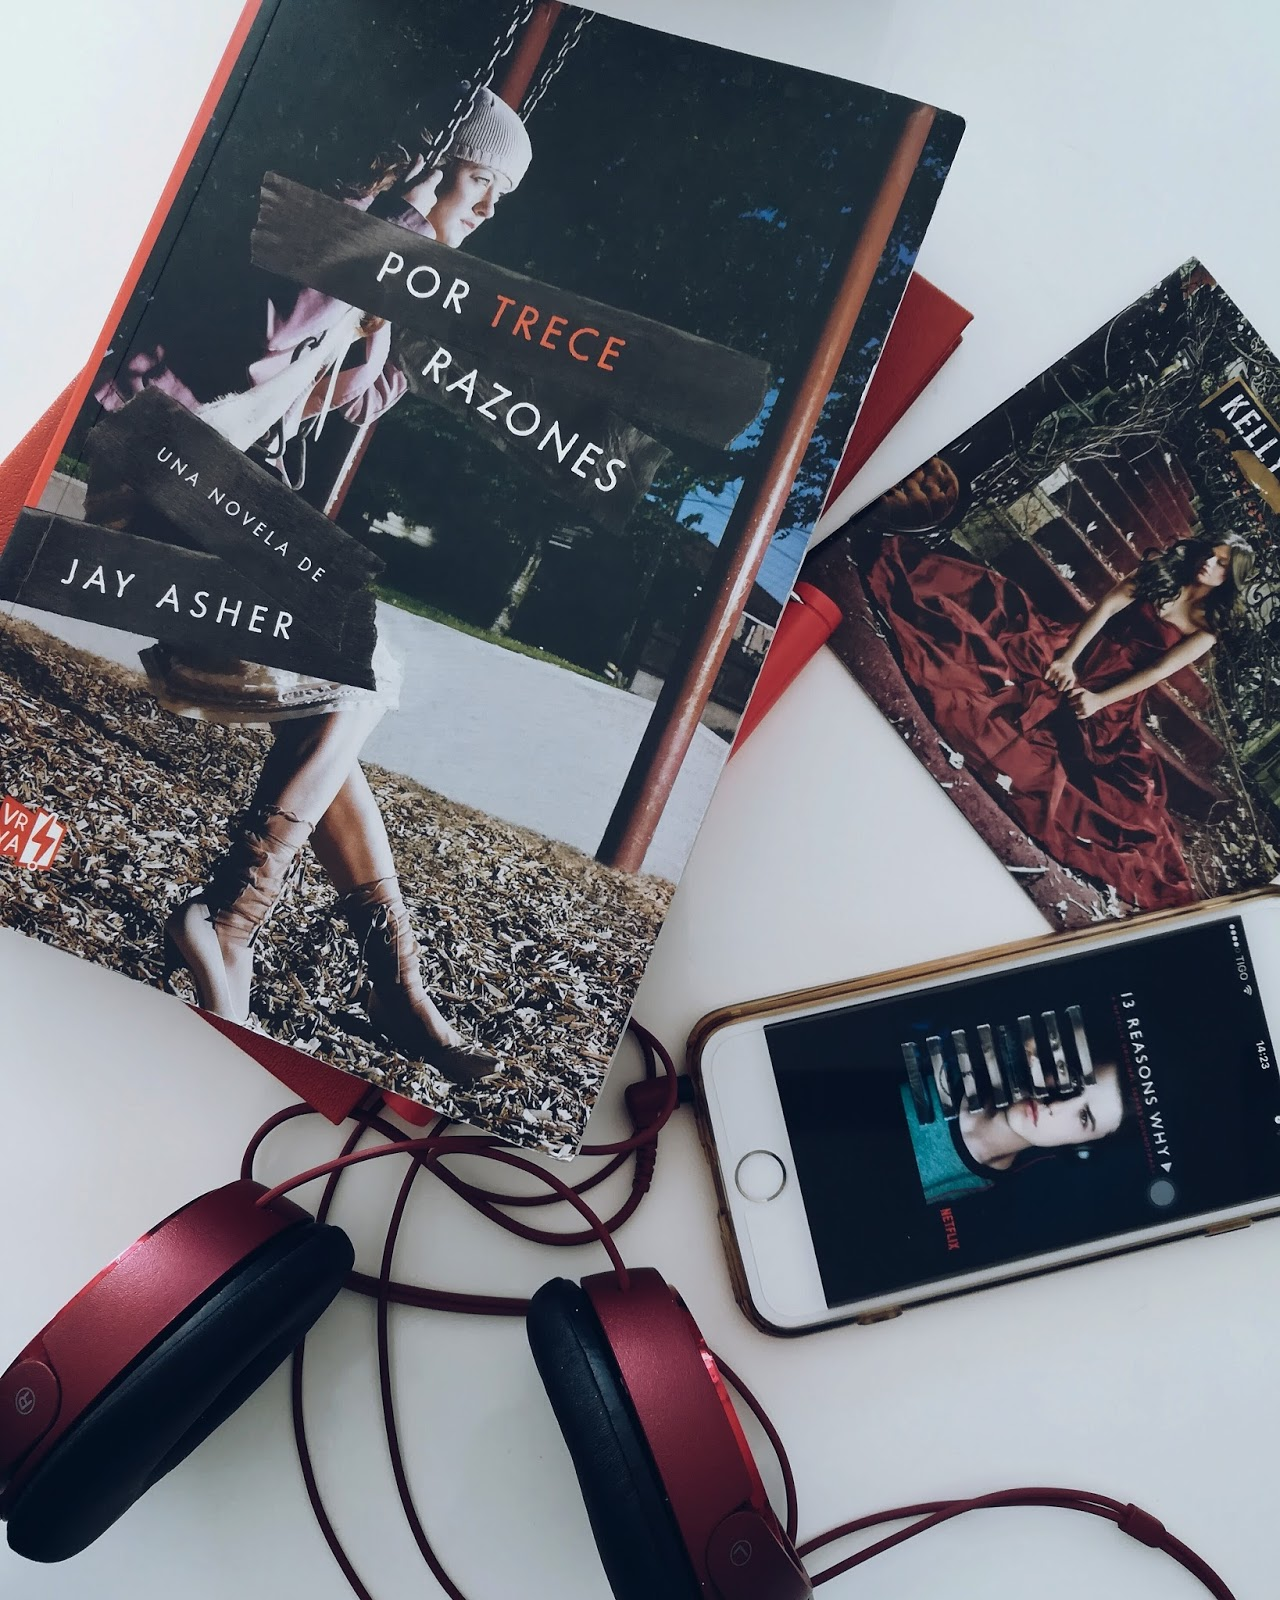 13 Reasons Why Libro Español 13 Reasons Why Leer El Libro Antes De Ver La Serie En Netflix